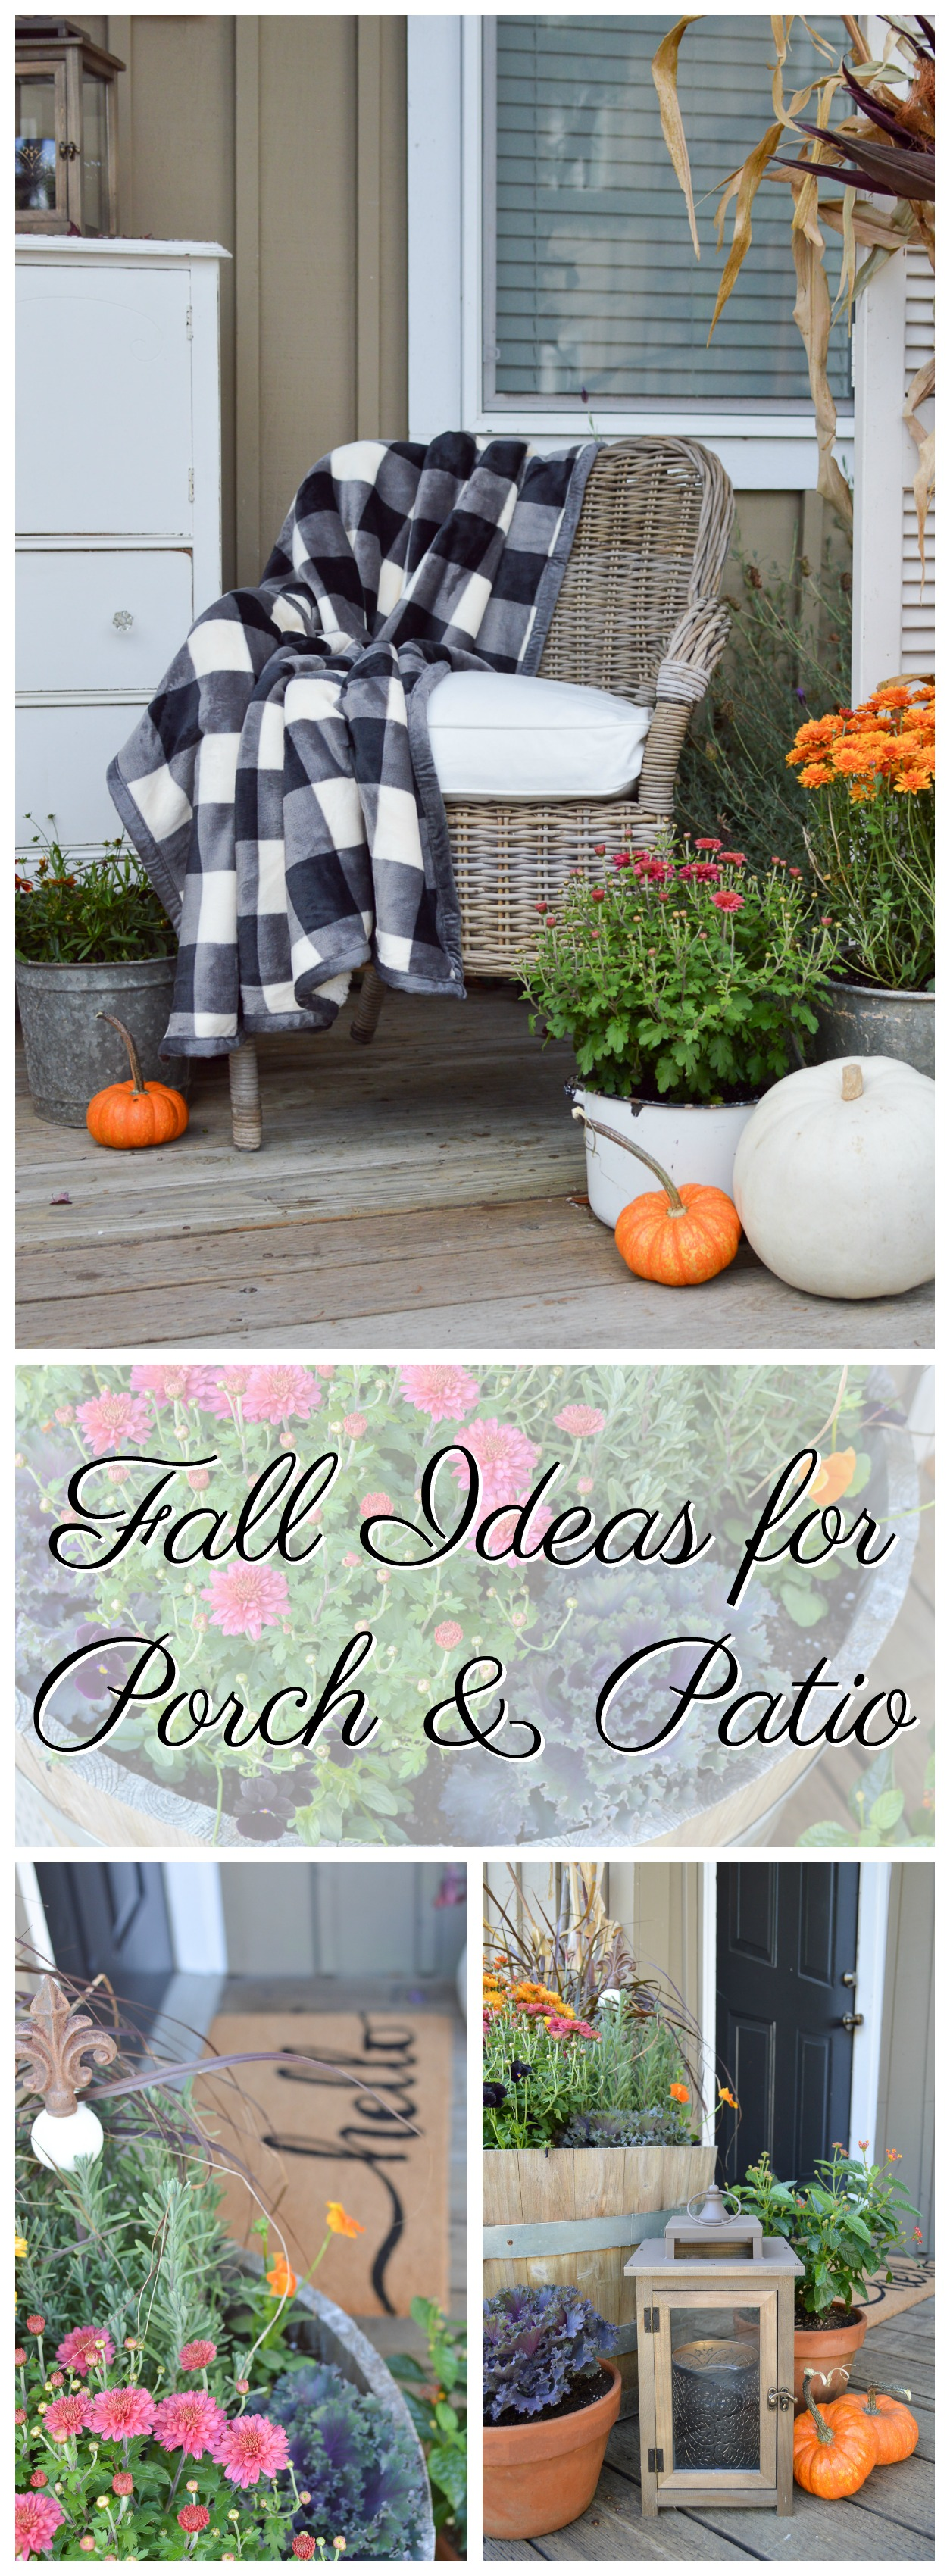 Make a small patio or porch a relaxing destination with flowers, lanterns for ambiance and a cozy spot to sit! Perfect for Fall, complete with Mums and pumpkins. Sponsored with Better Homes & Gardens #BHGLiveBetter